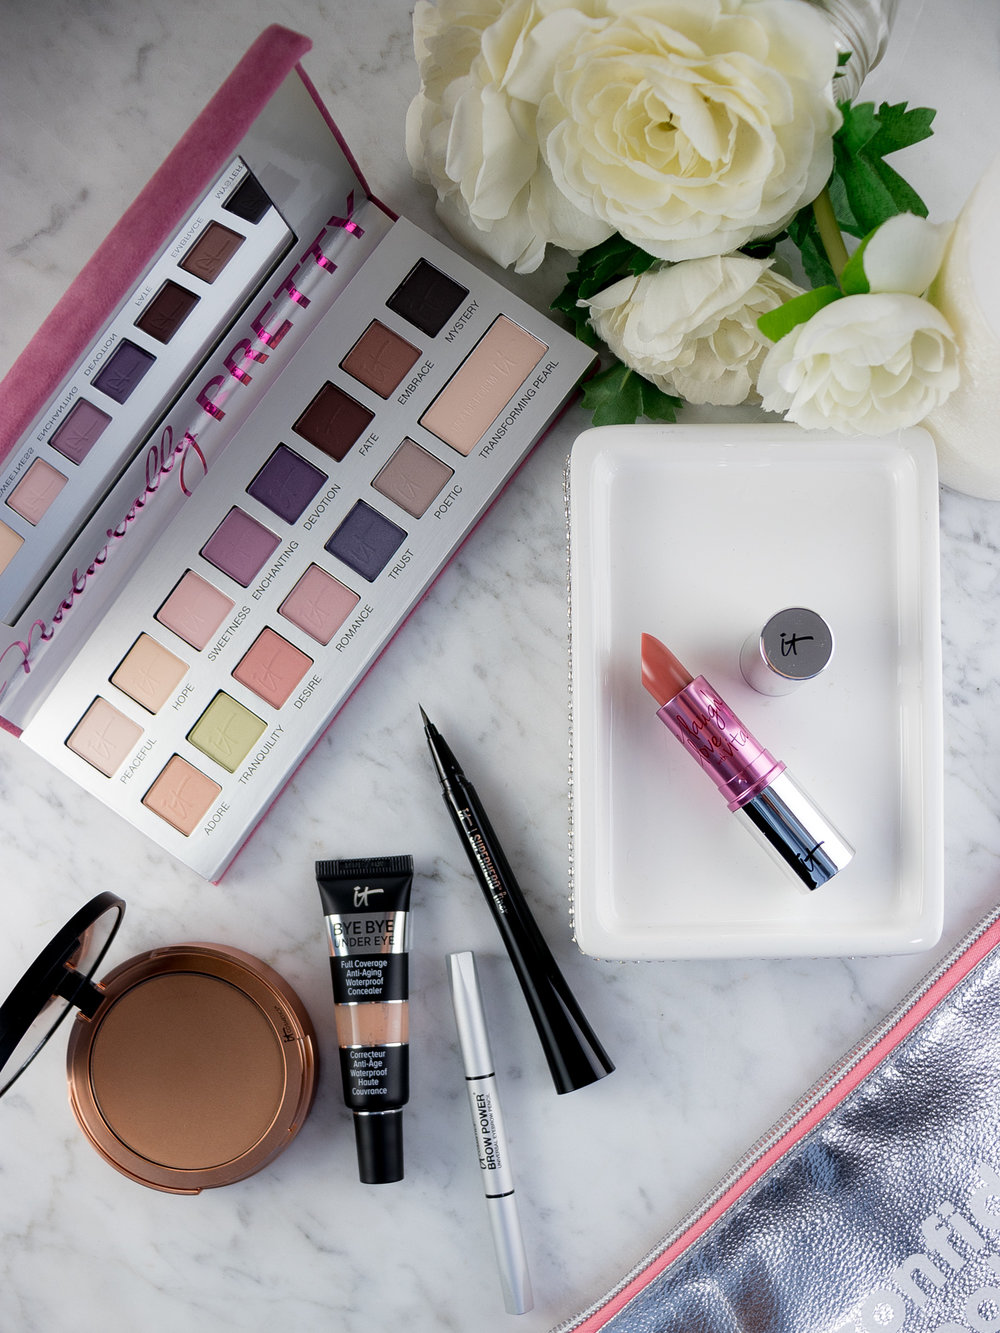 IT Cosmetics' Private Sale - All the Products + Details